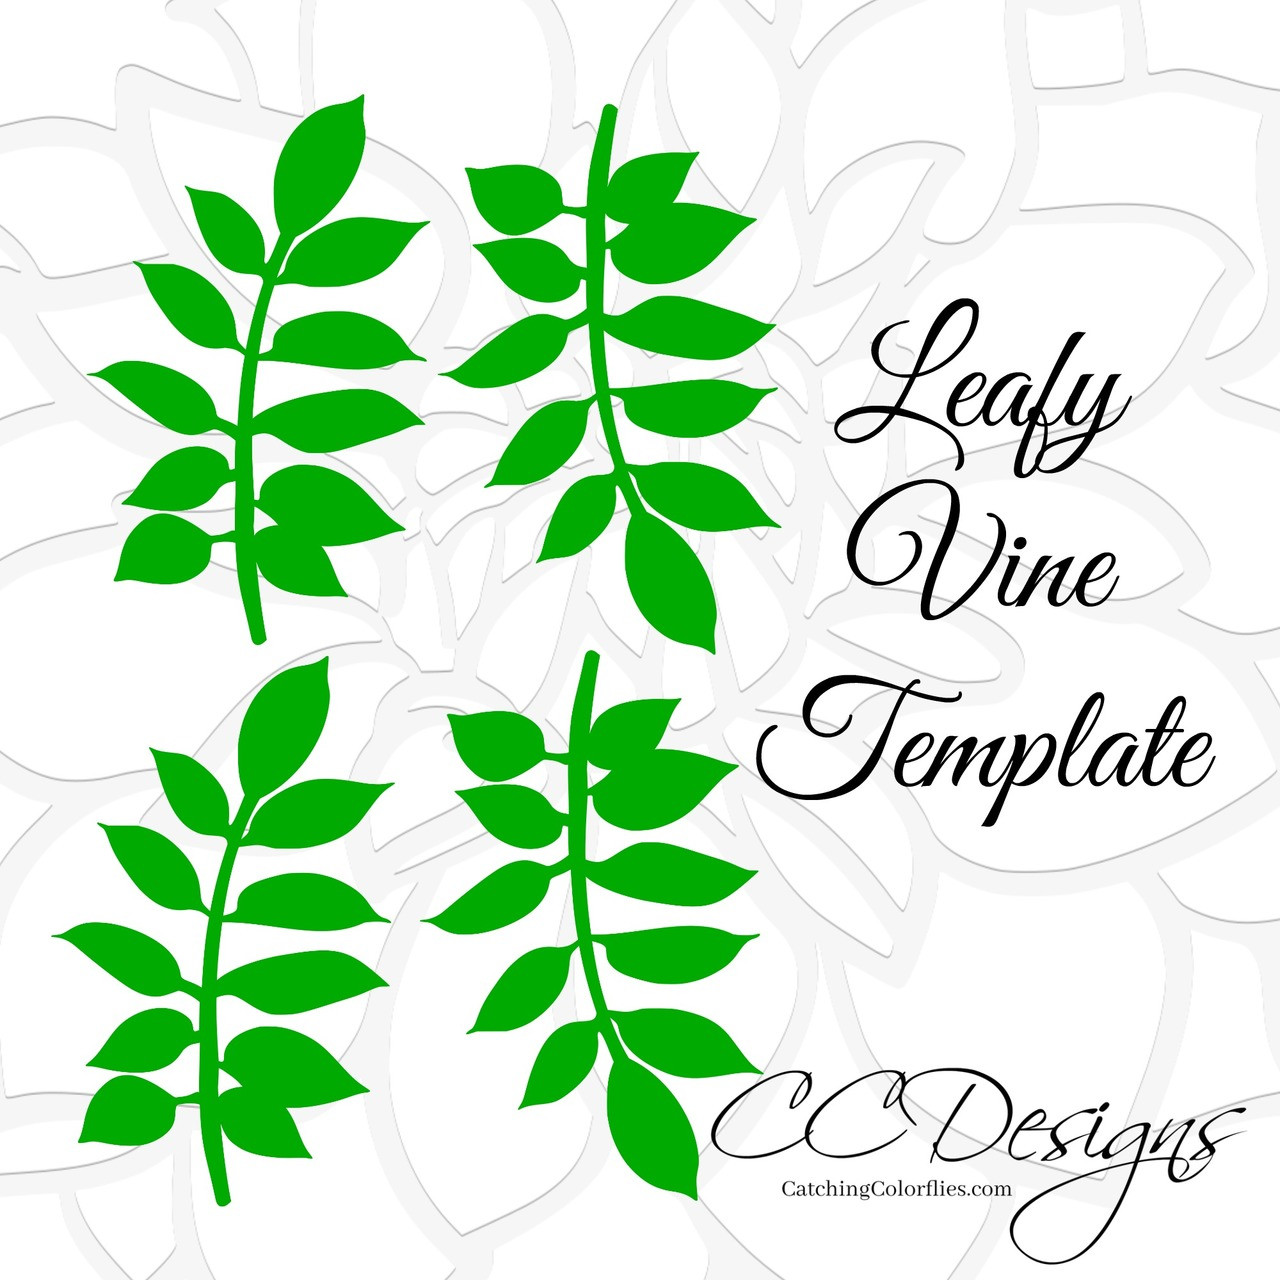 small gardenia paper flower template catching colorlfies